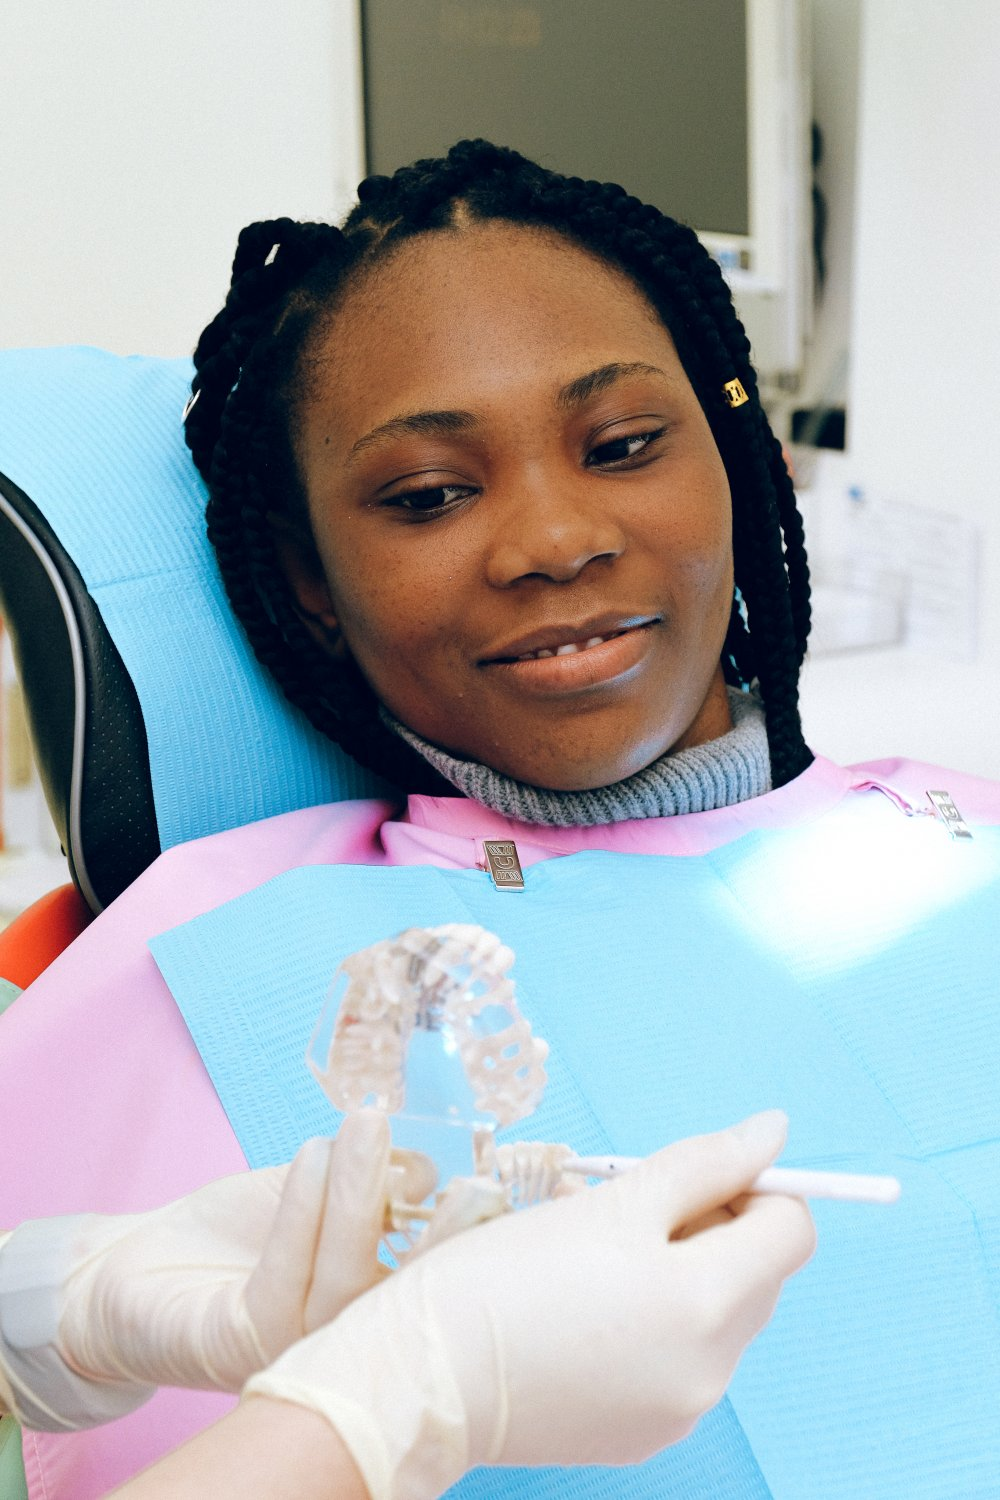 How You Can Transform Your Teeth Issues With Invisalign